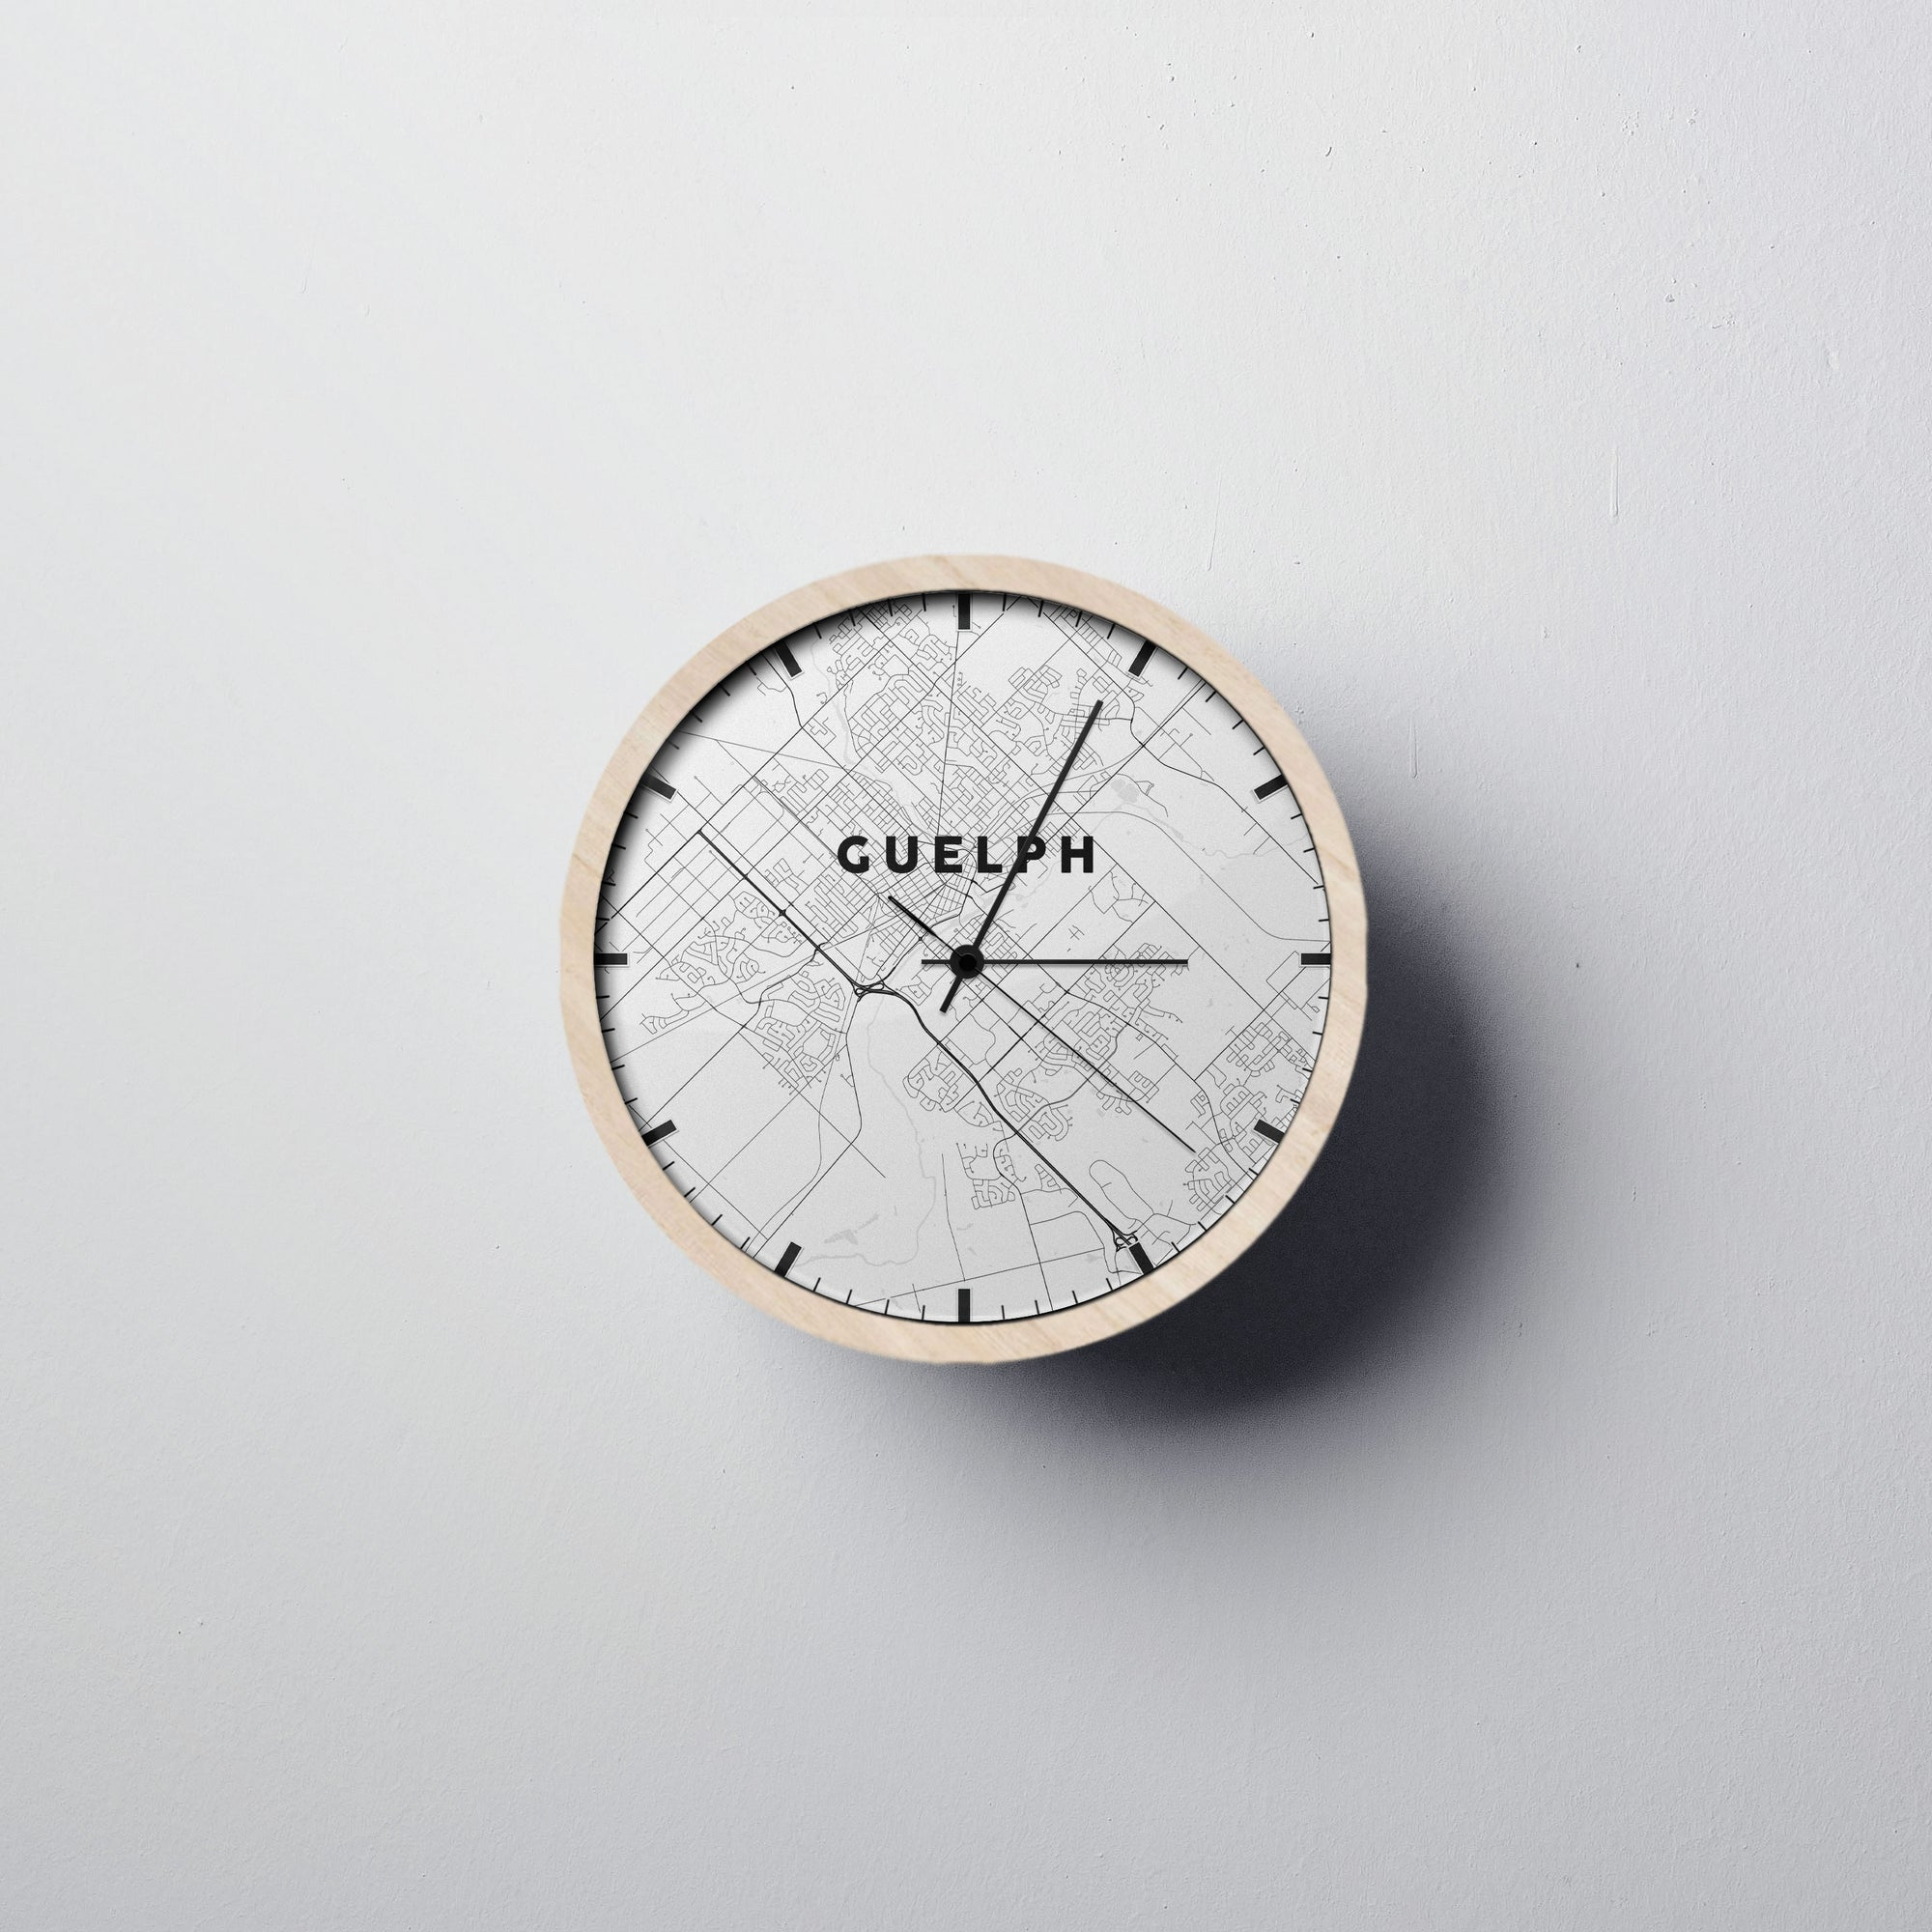 Guelph Wall Clock